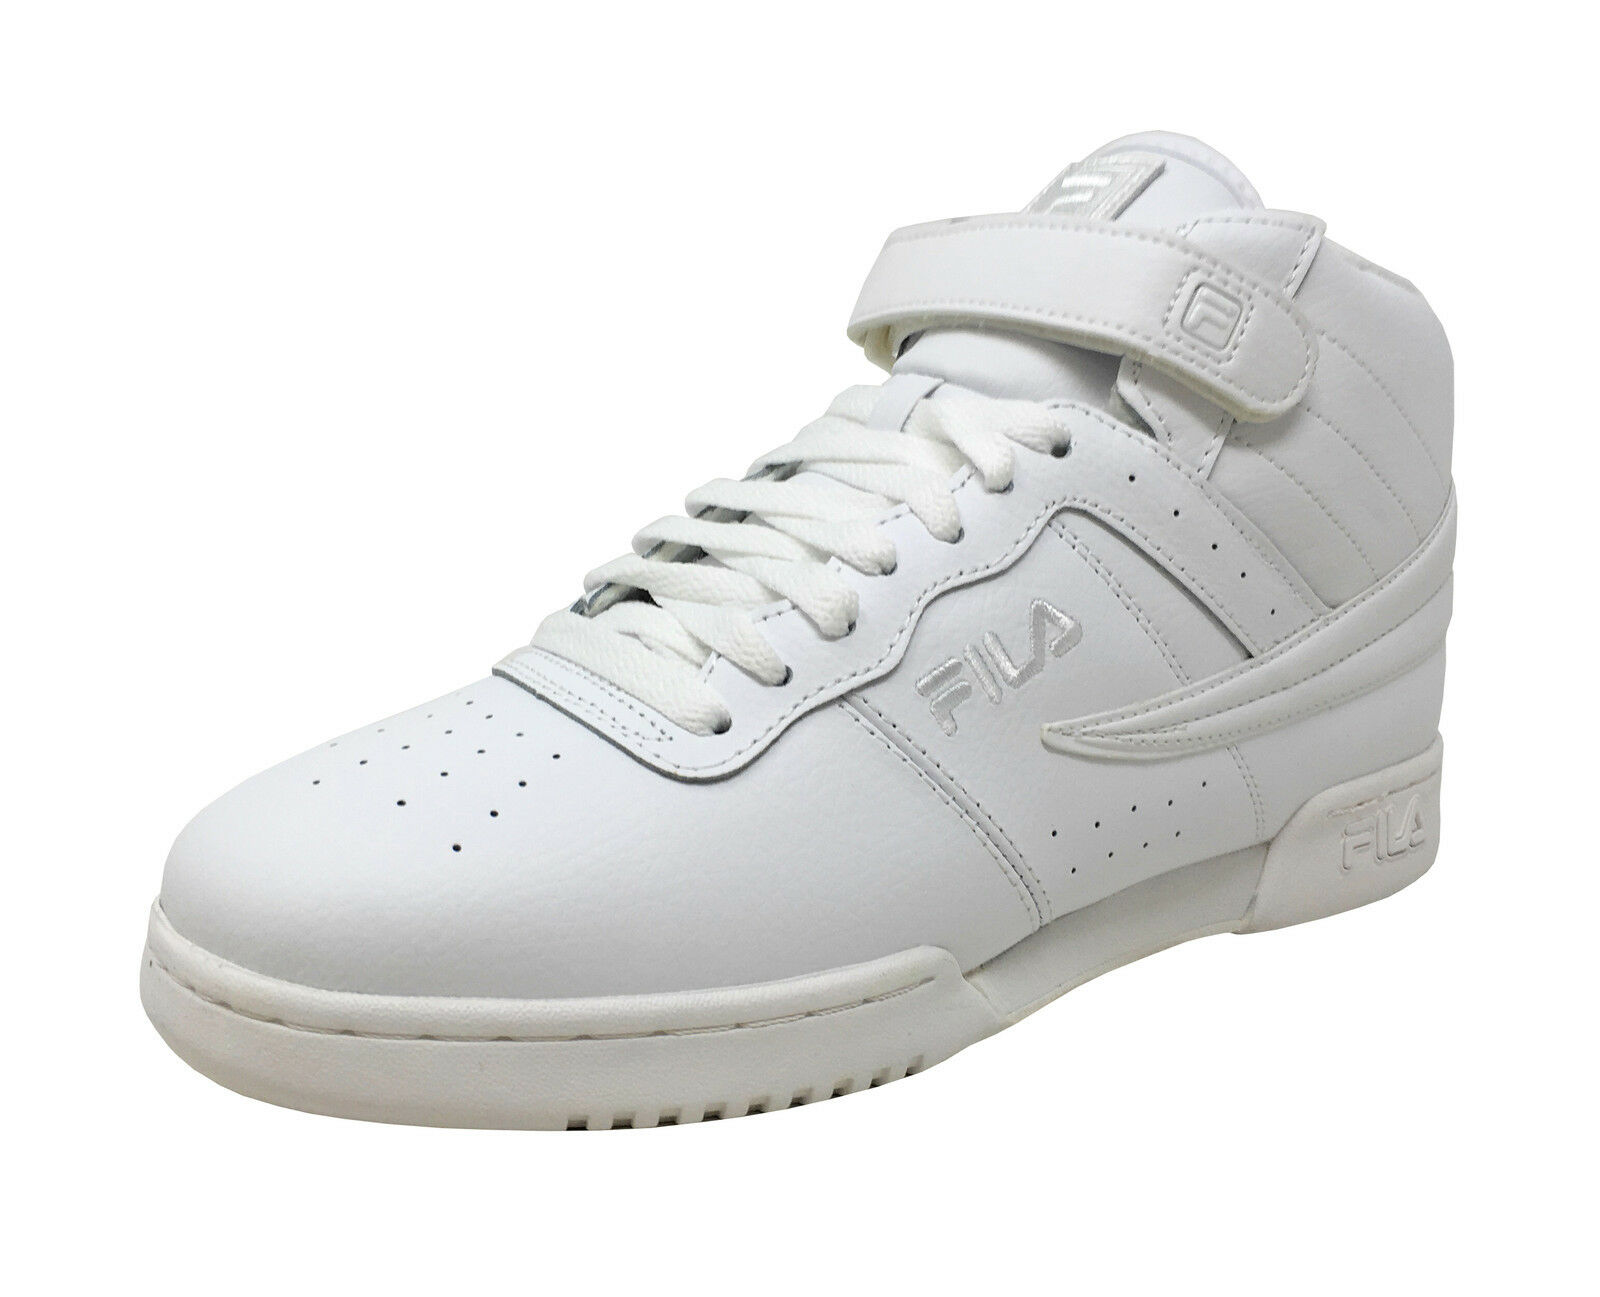 Fila Men's F-13v Hi Top Basketball shoes 1VF059LX-100 - Triple White